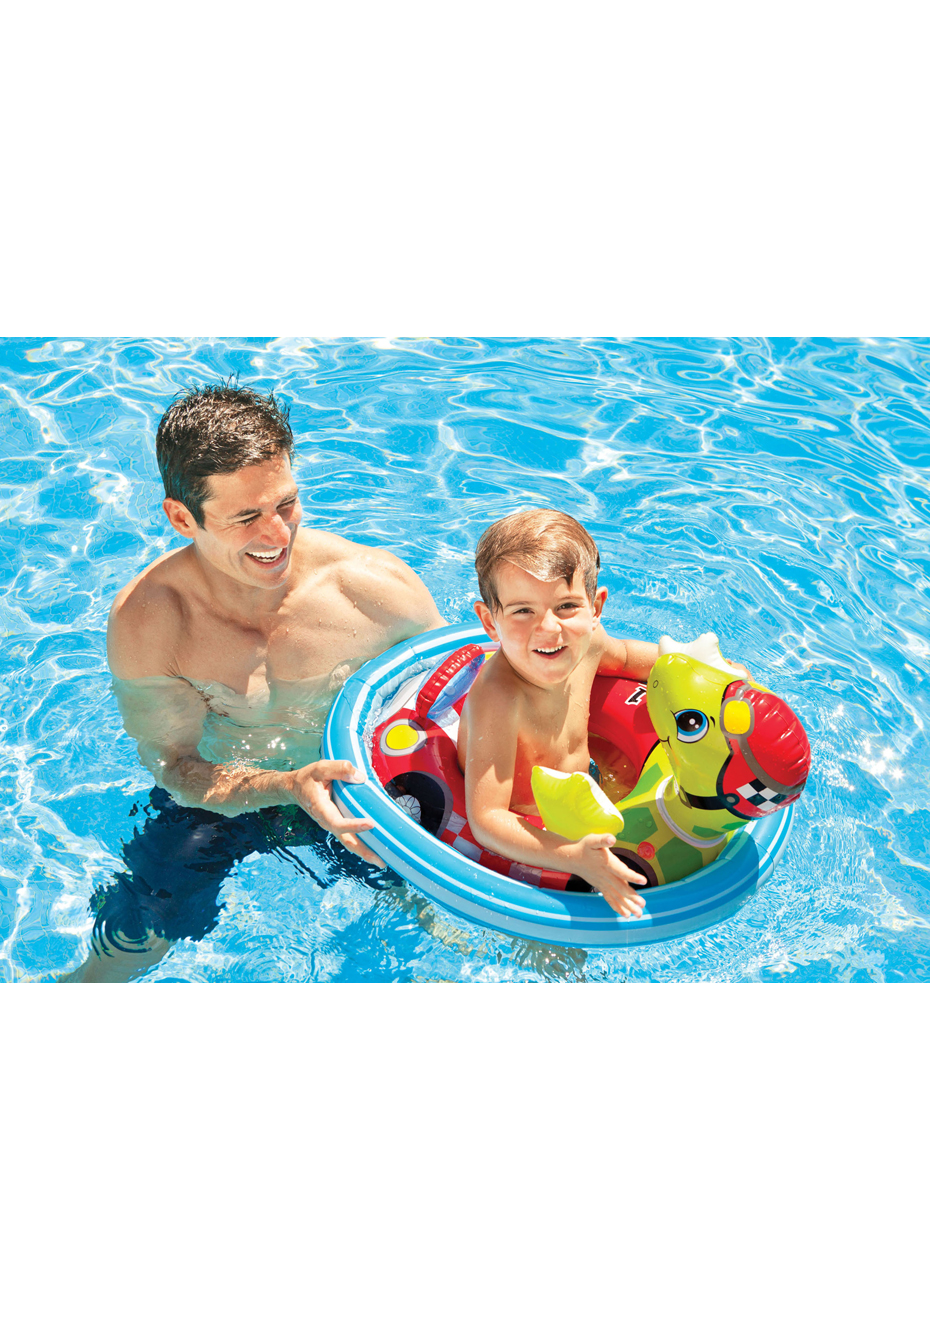 Intex Inflatable See Me Sit Pool Ride for Age 3-4